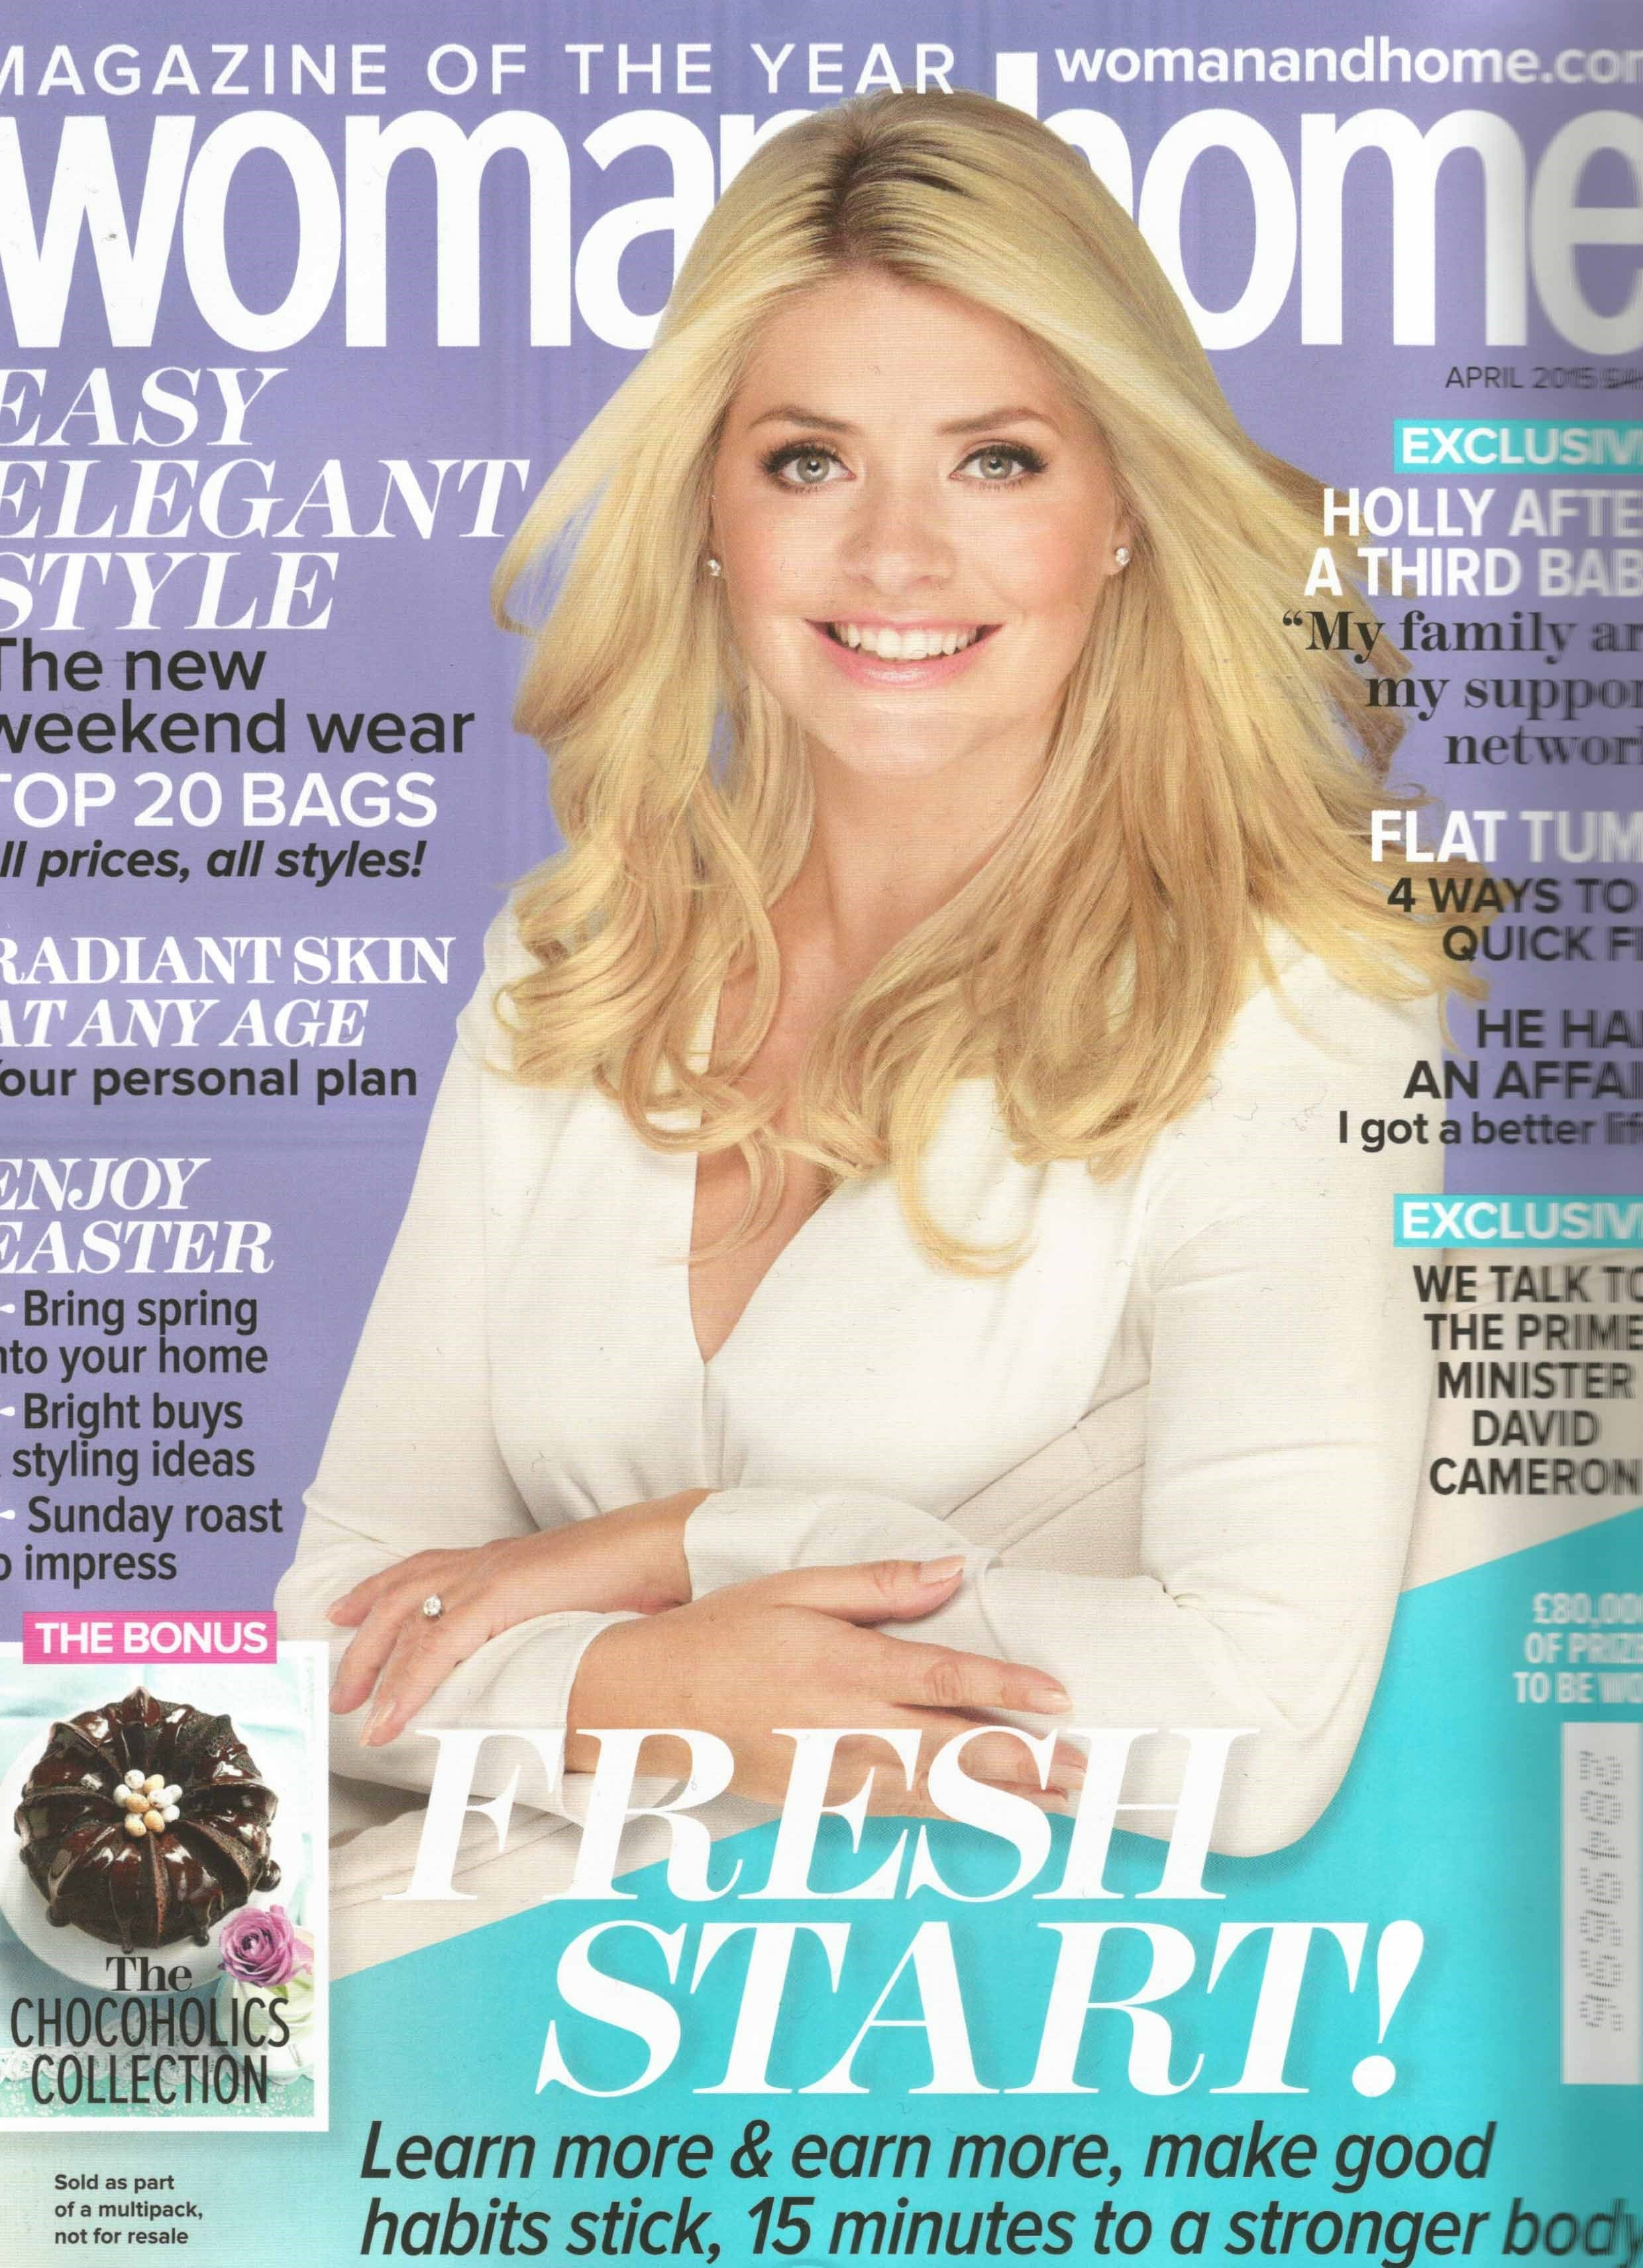 woman and home magazine cover